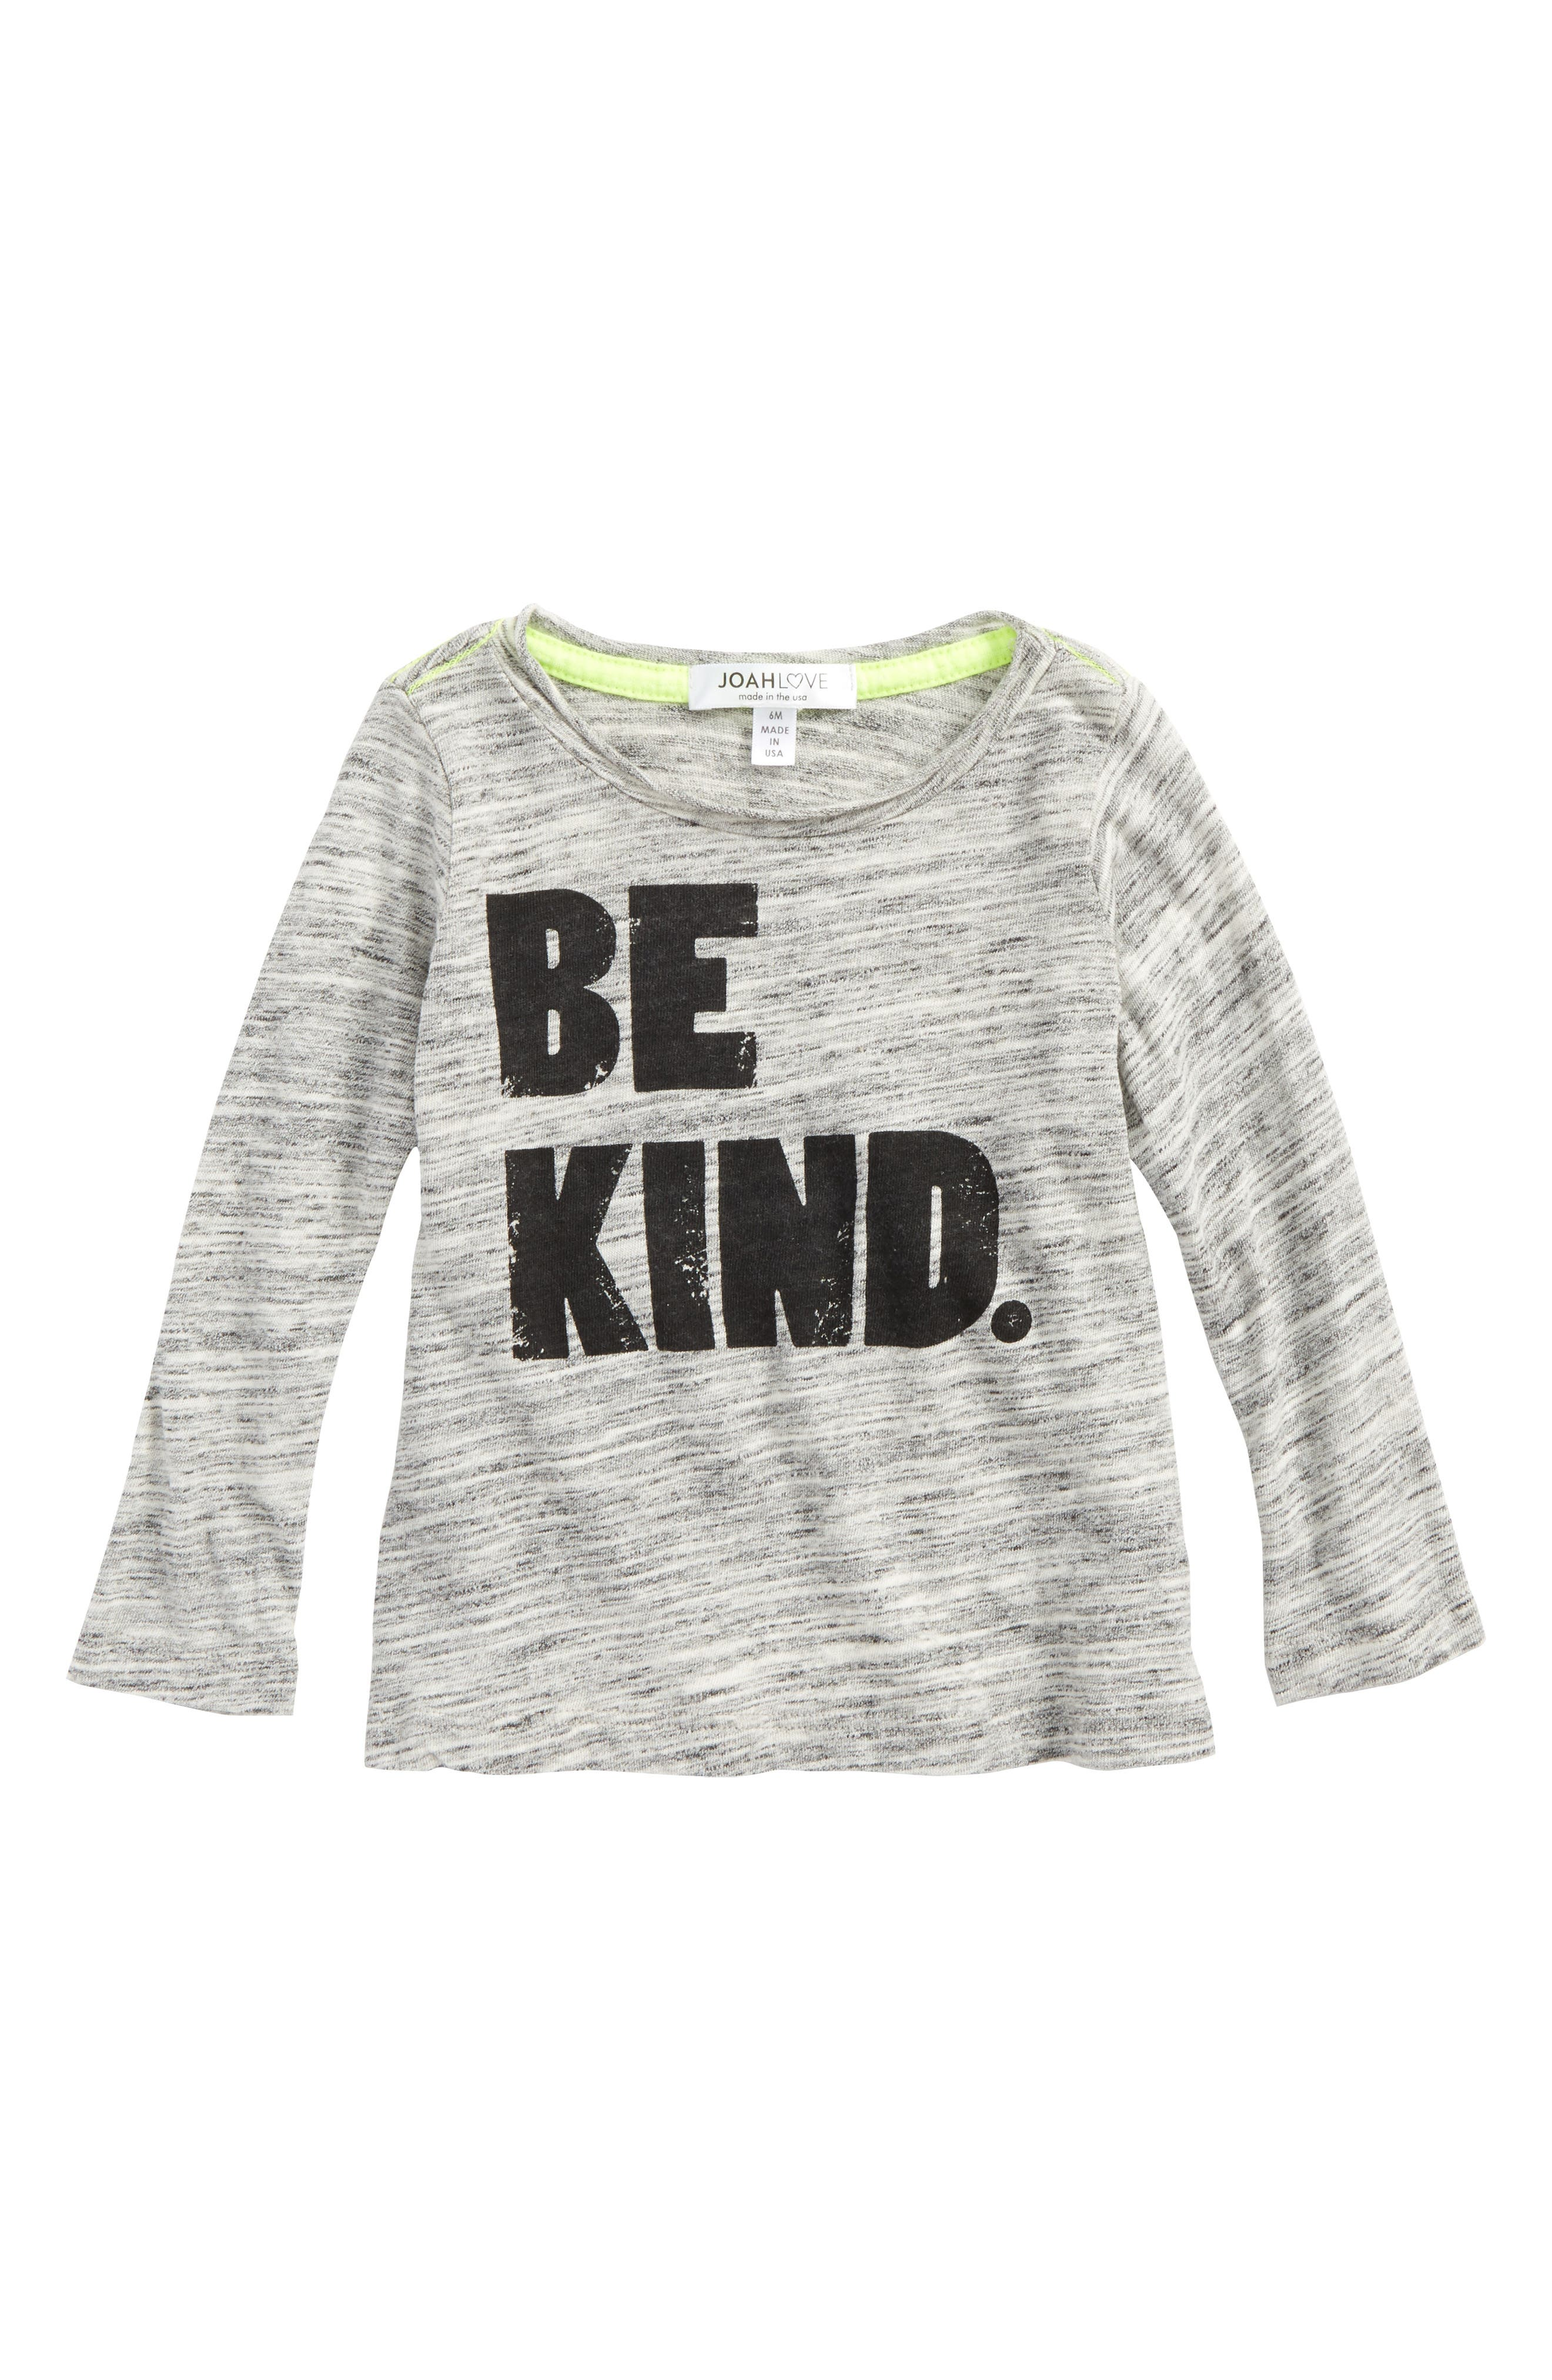 Be Kind Graphic Shirt,                             Main thumbnail 1, color,                             020